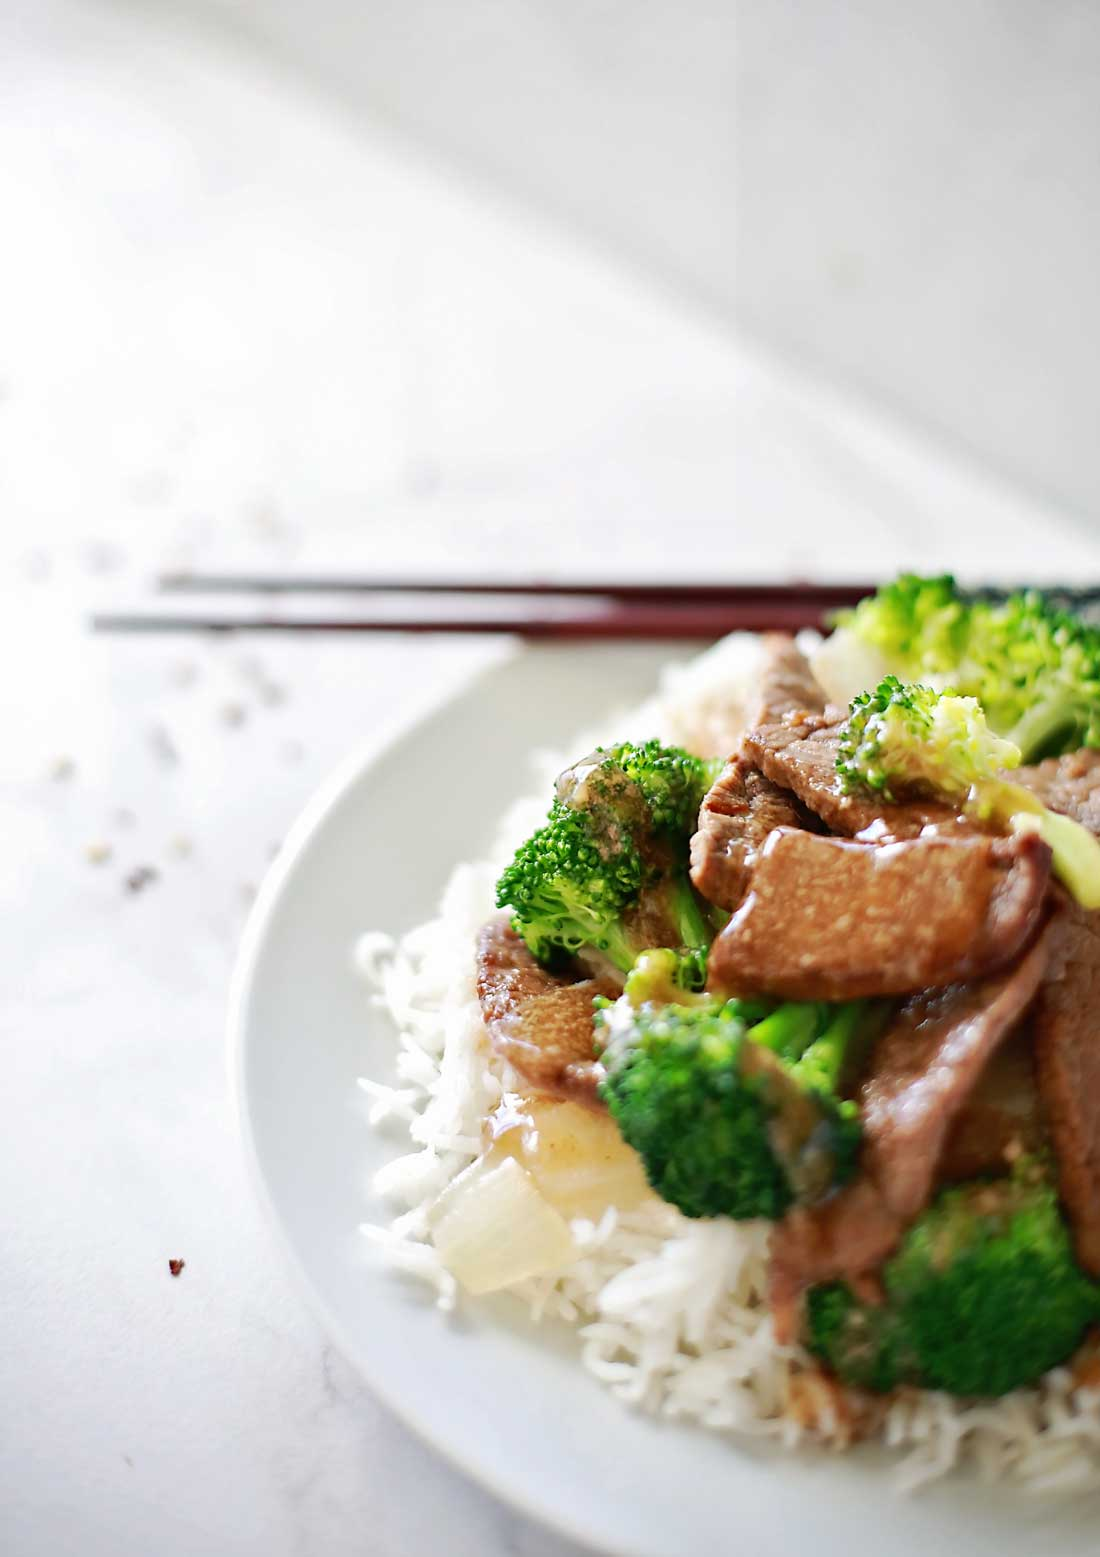 Best Asian beef and broccoli recipe: Tender marinated beef with broccoli cooked tender yet toothsome, in an easy delicious savory sauce.